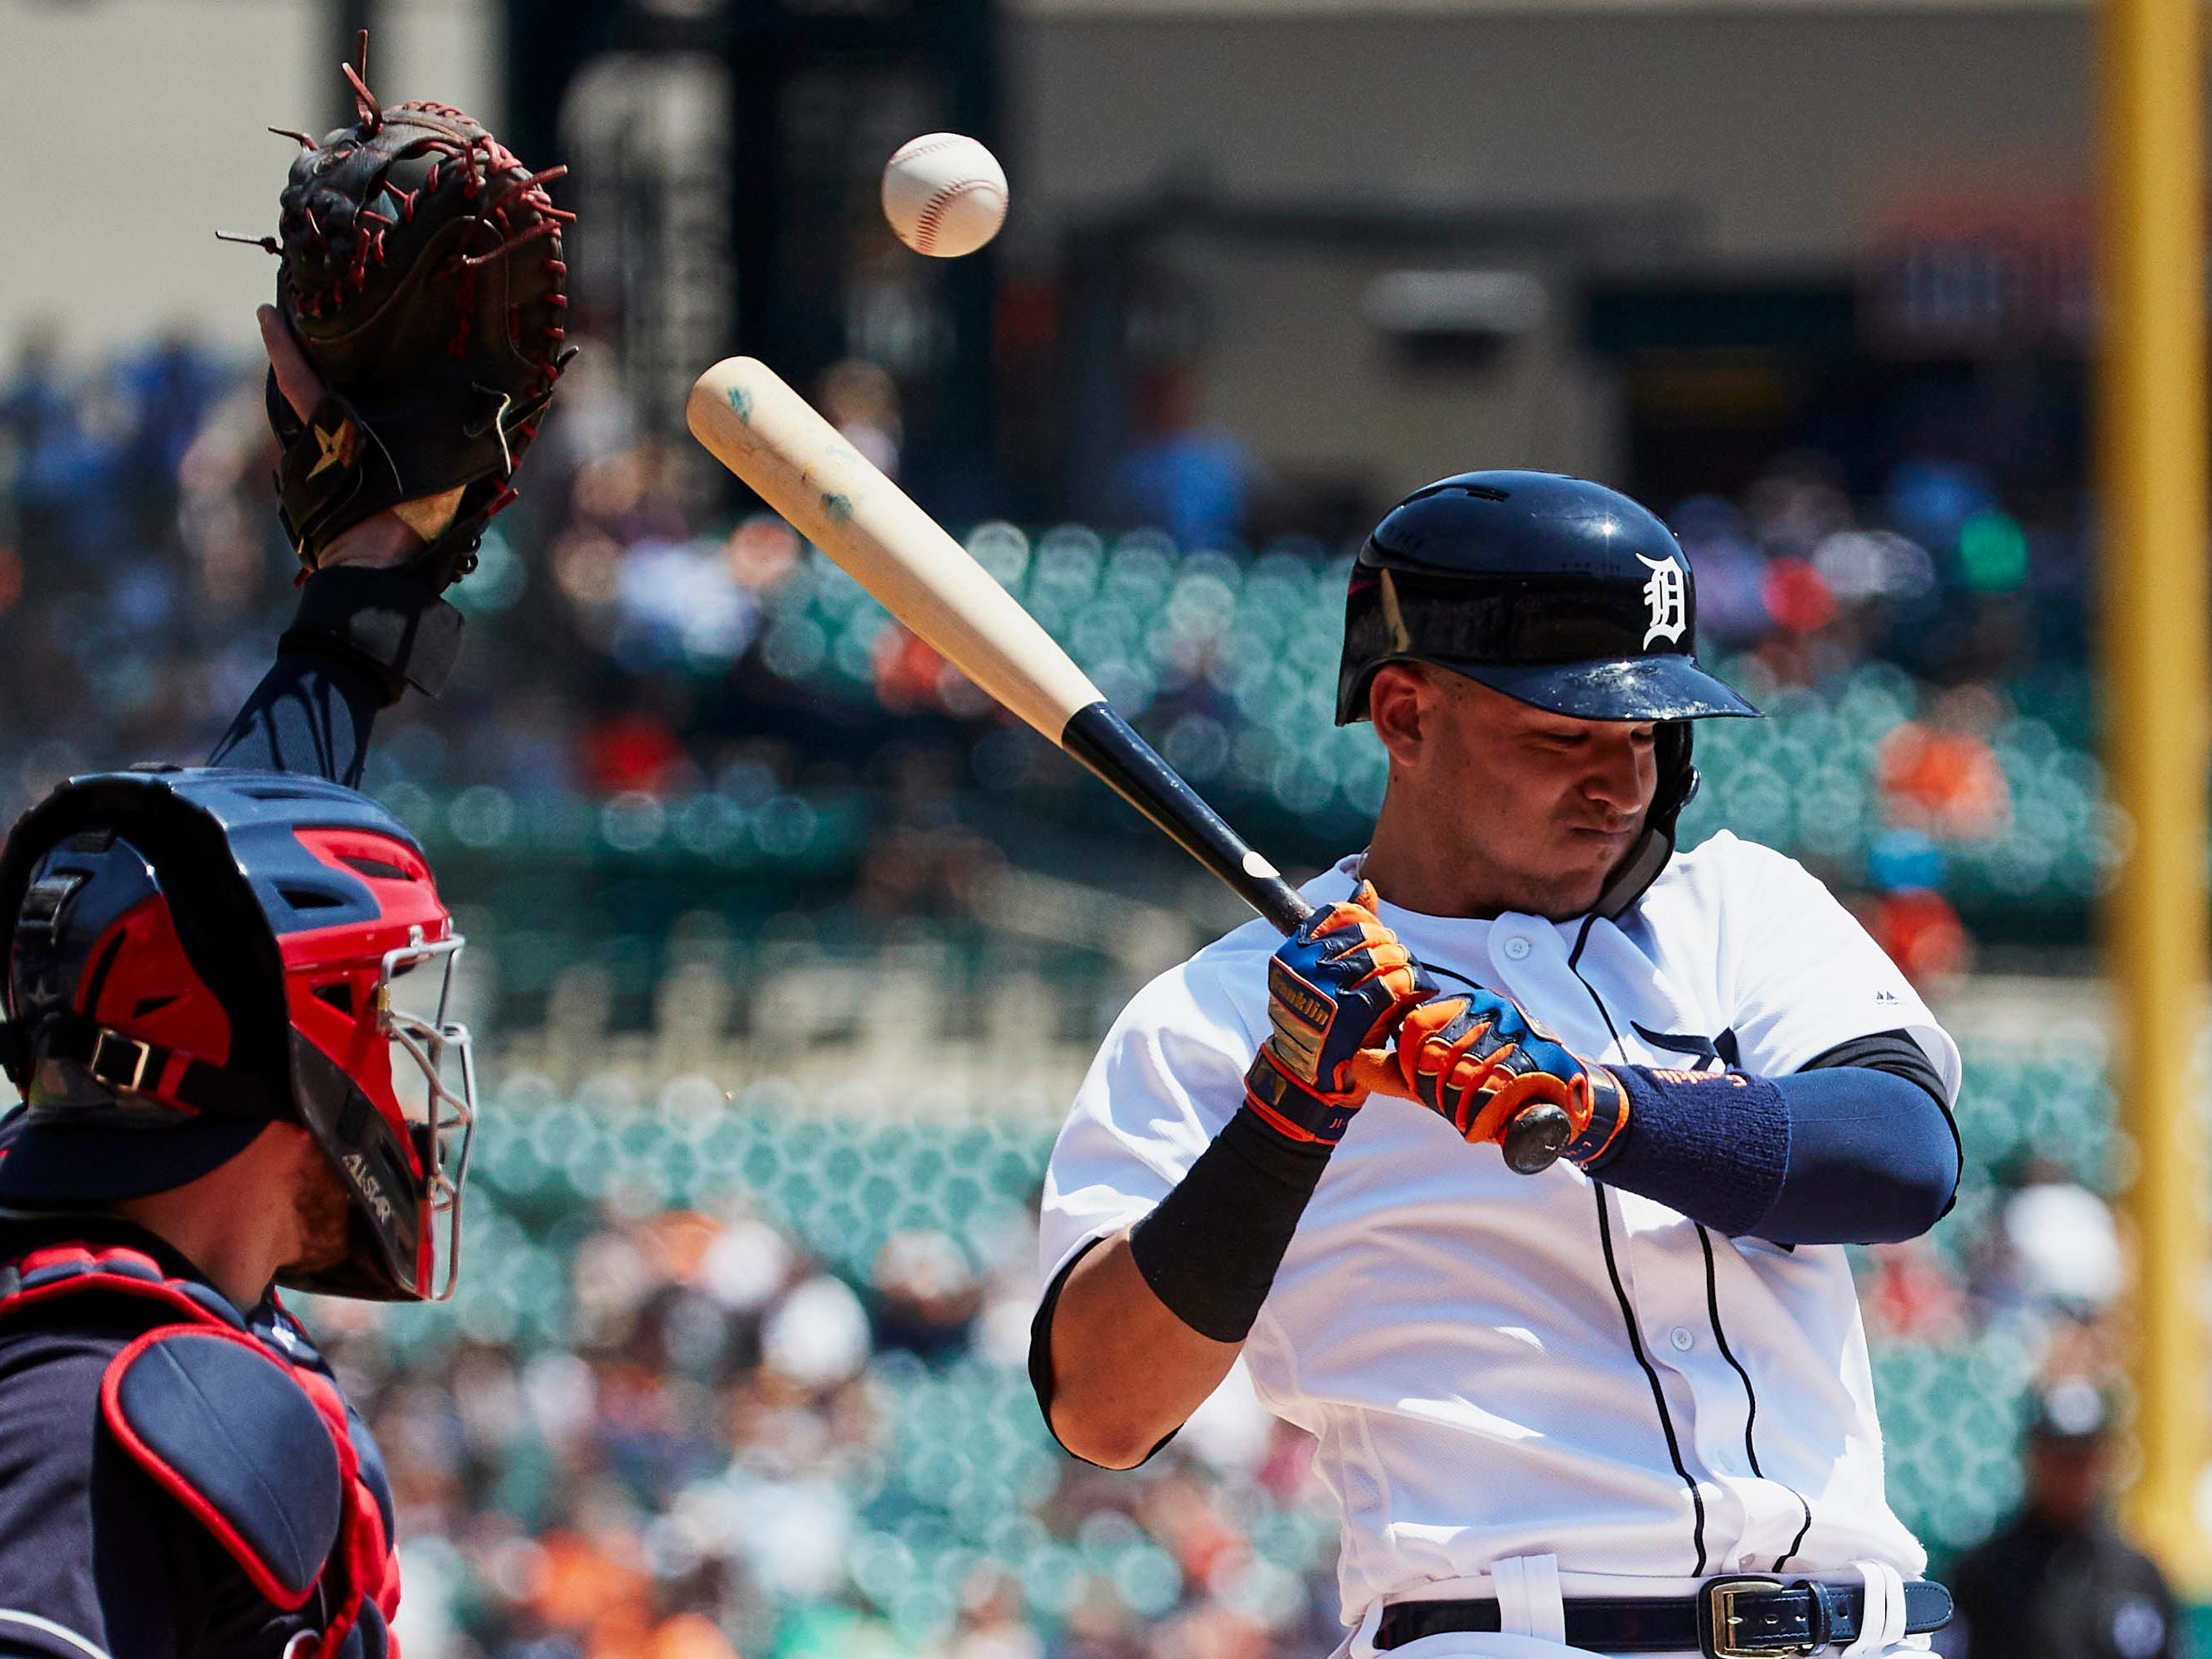 May 16 in Detroit: Indians 6, Tigers 0. Jose Iglesias avoids an inside pitch in the third inning against the Indians at Comerica Park.